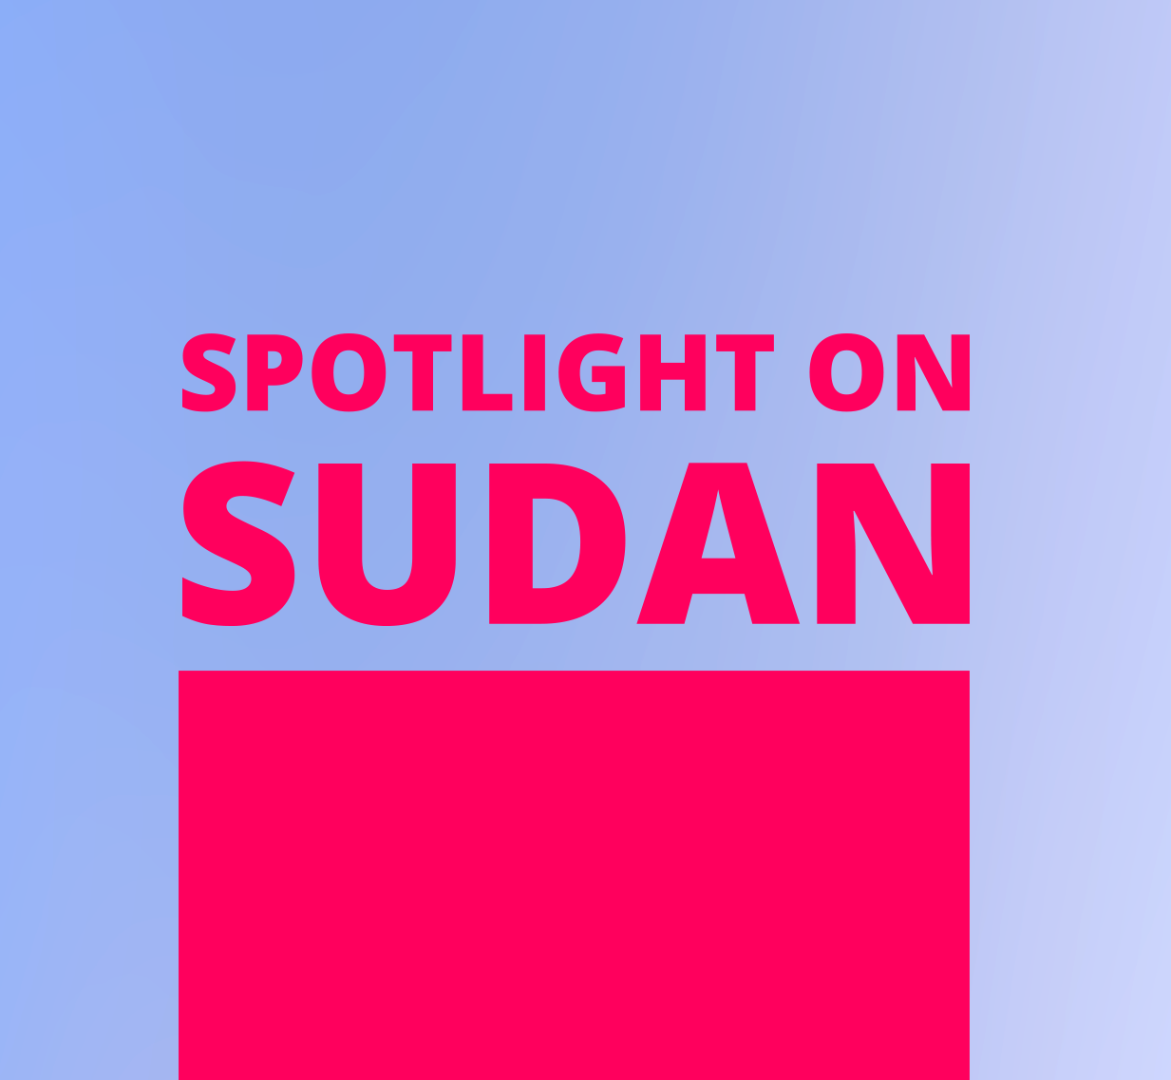 sudan study cover zoomed